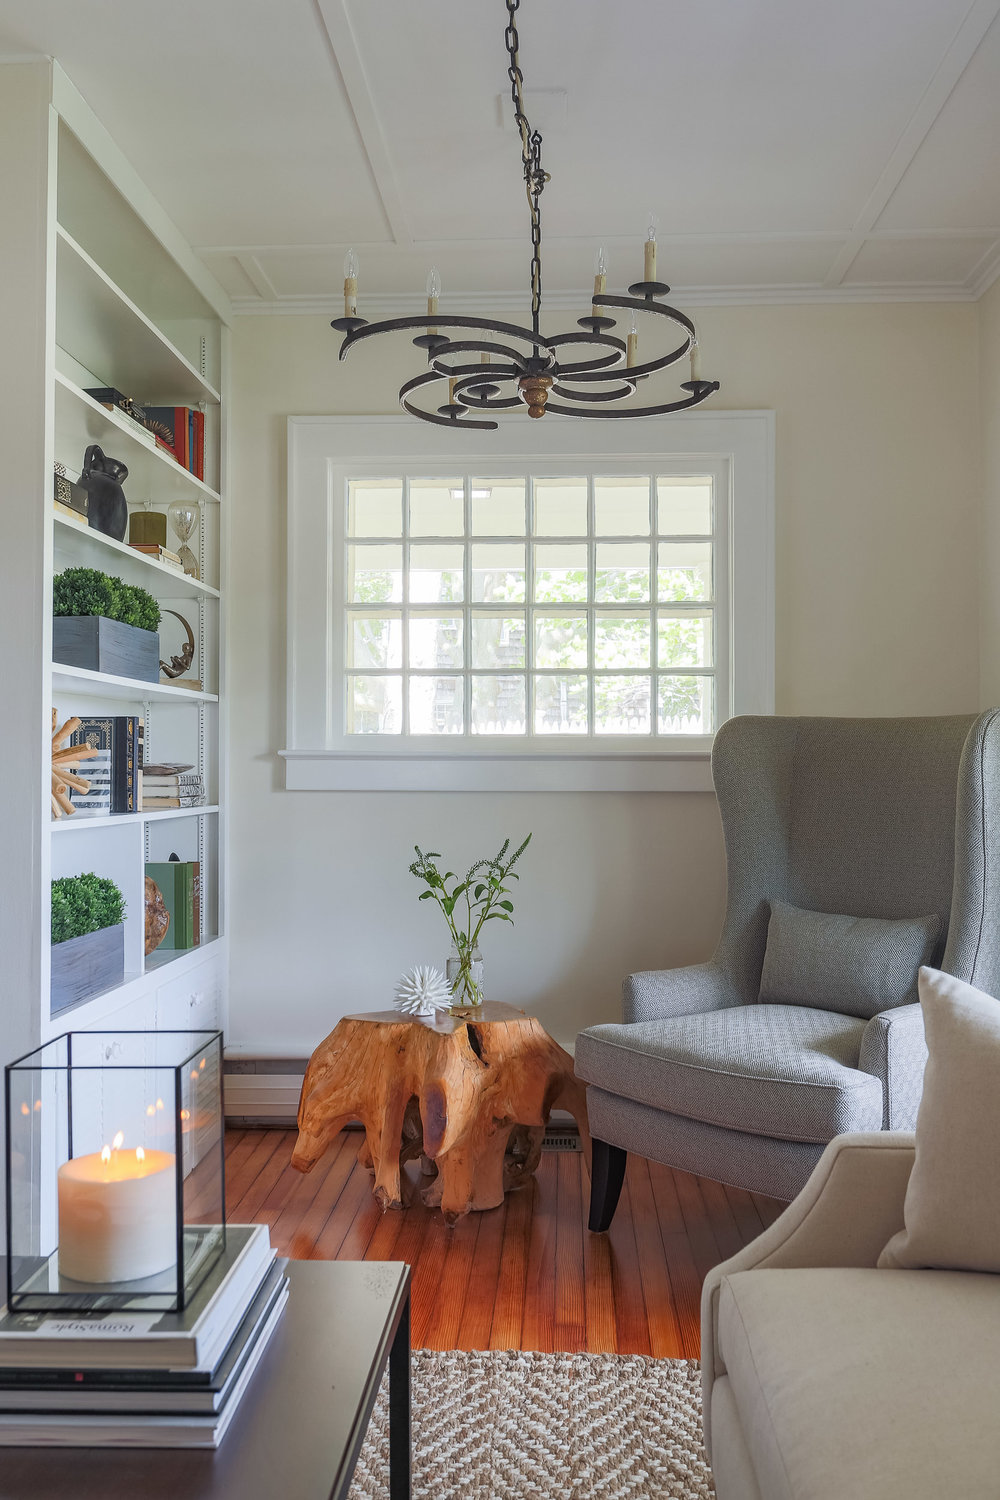 Cozy reading nook bookcase rustic chandelier teak.jpg